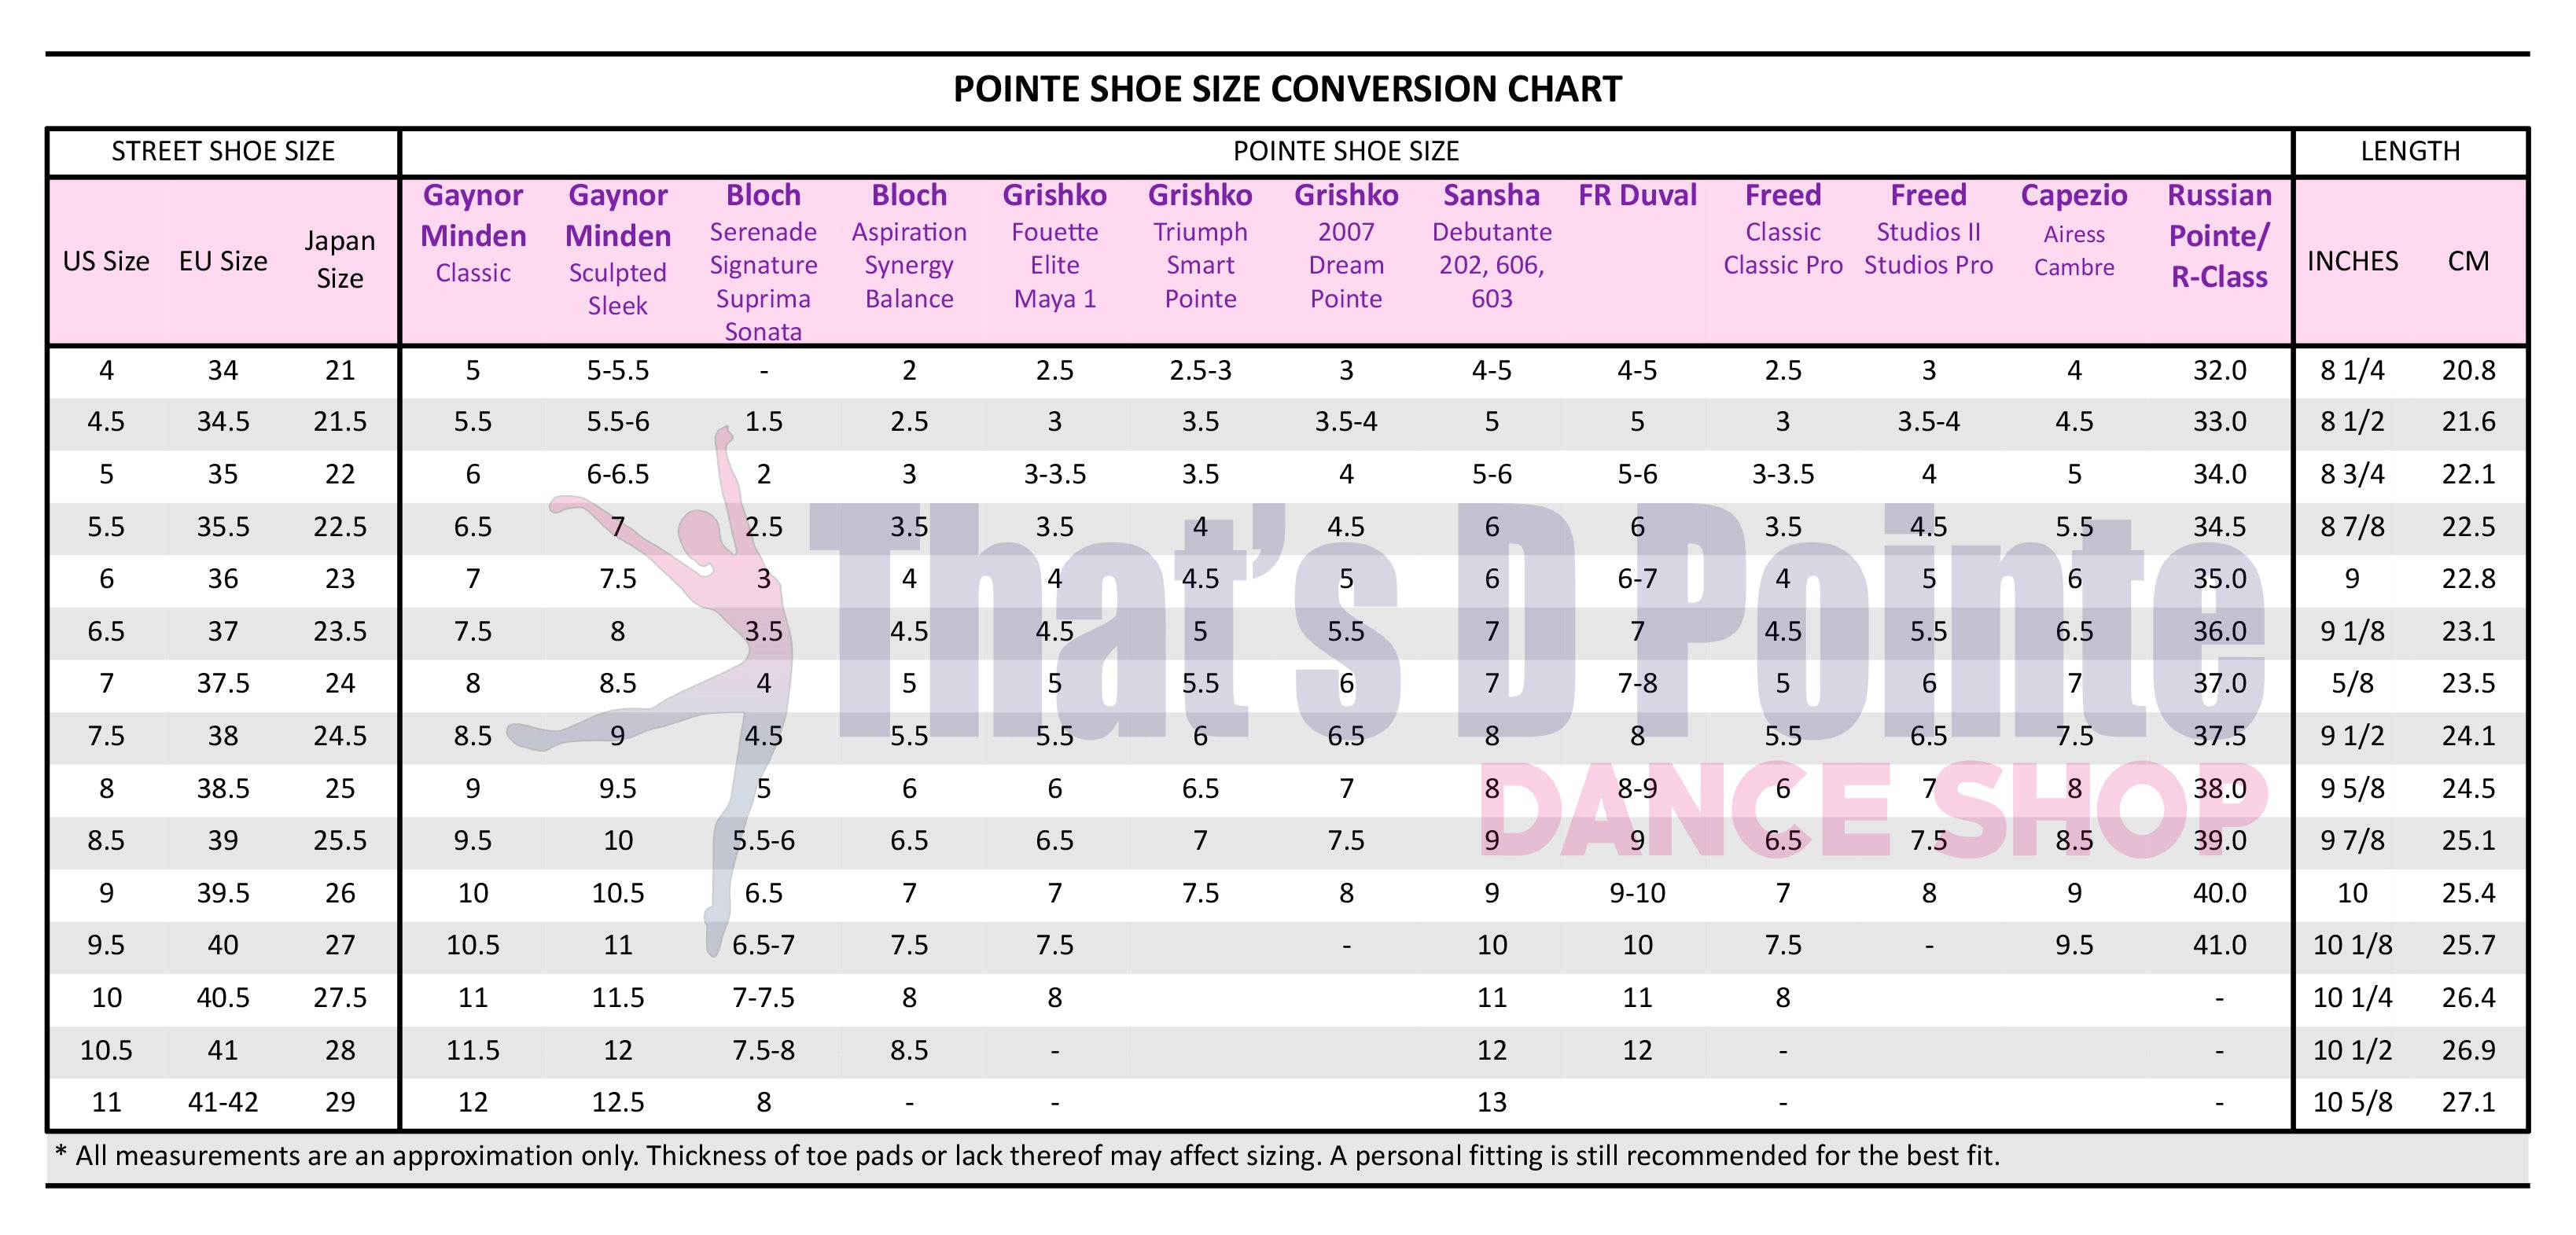 Pointe Shoe Size Conversion